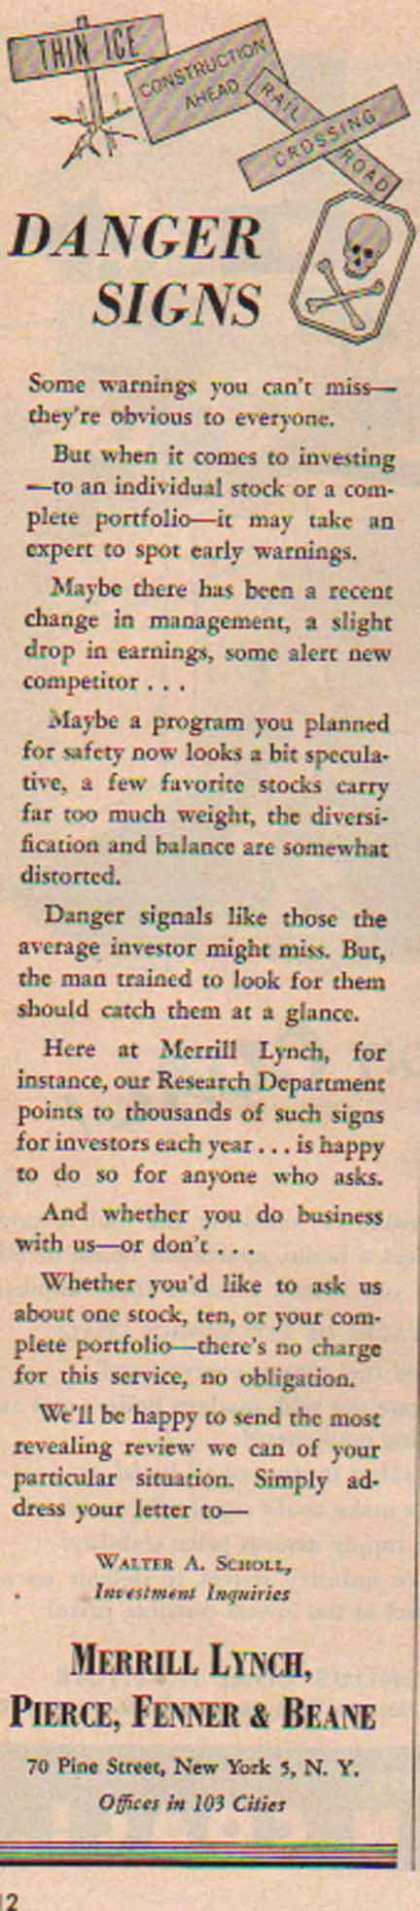 Merrill Lynch, Pierce, Fenner & Bean – Sold (1952)